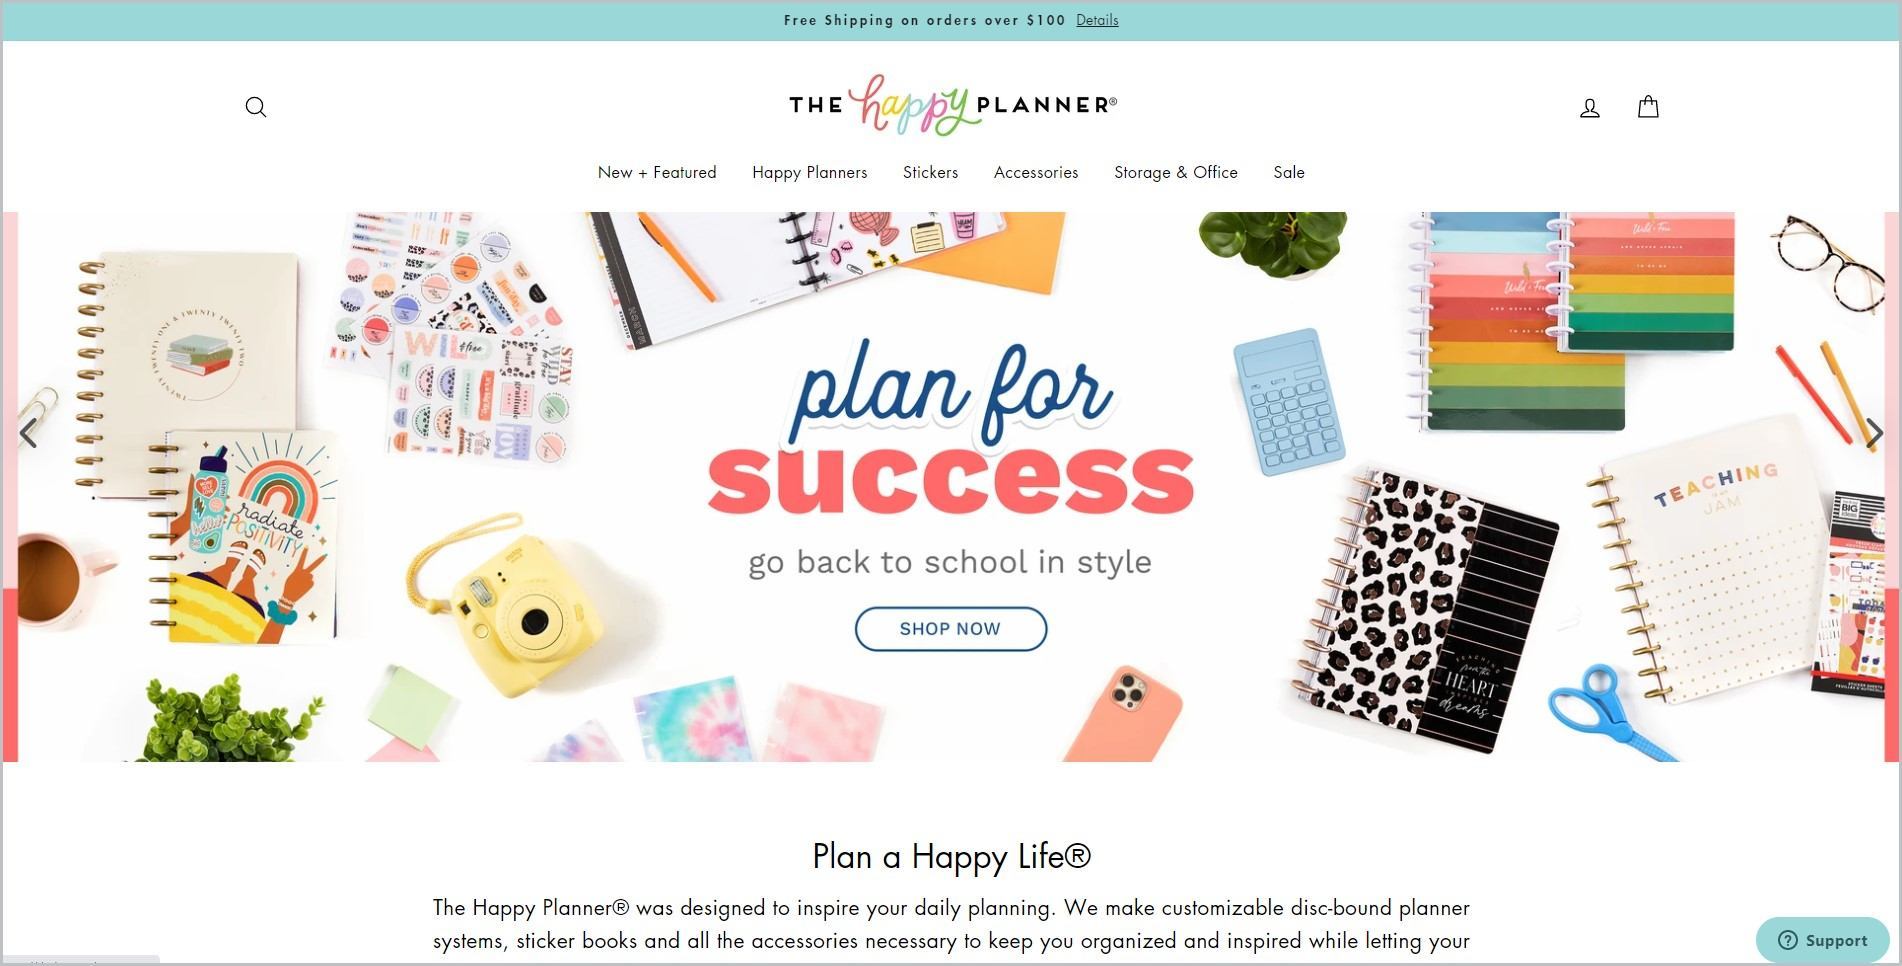 screenshot of The Happy Planner homepage, with light green announcement bar, white header with the website's name and main navigation menu, it showcases images of planners and planner accessories